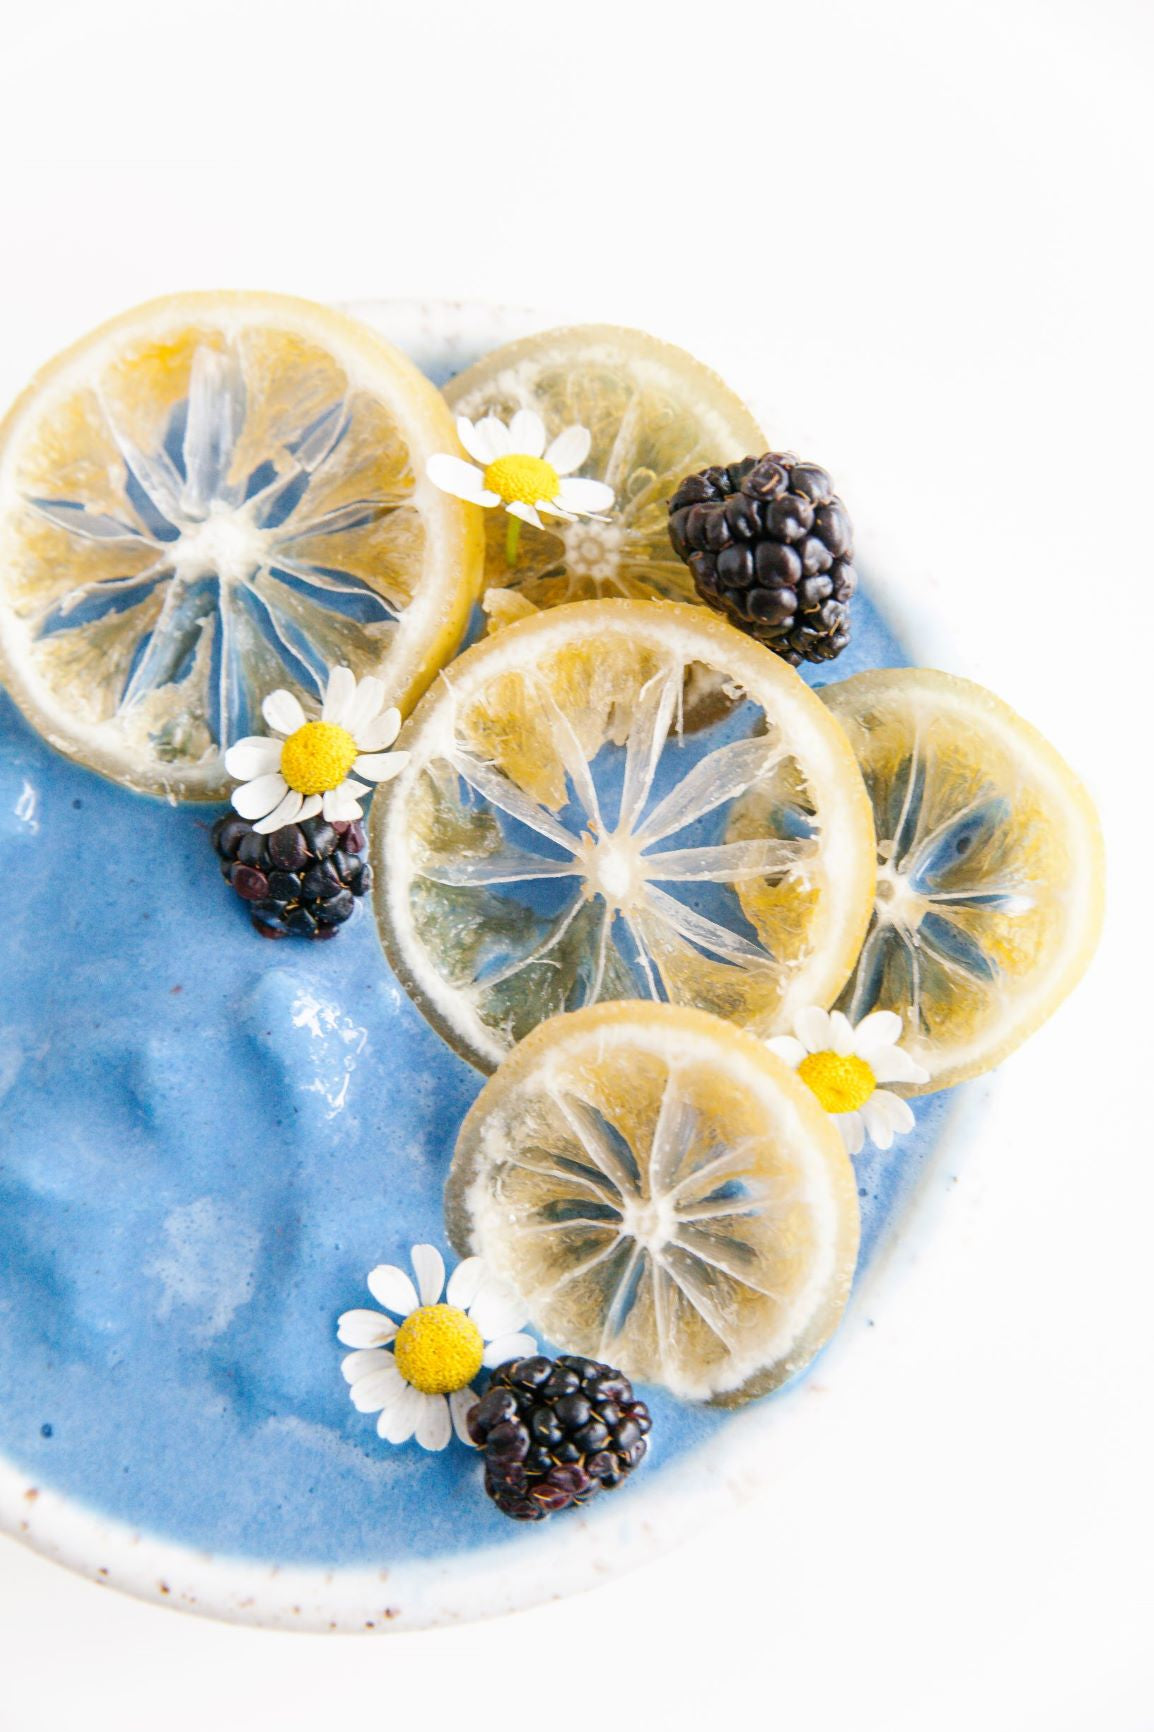 Image of a Blue Protein Spirulina Smoothie Bowl